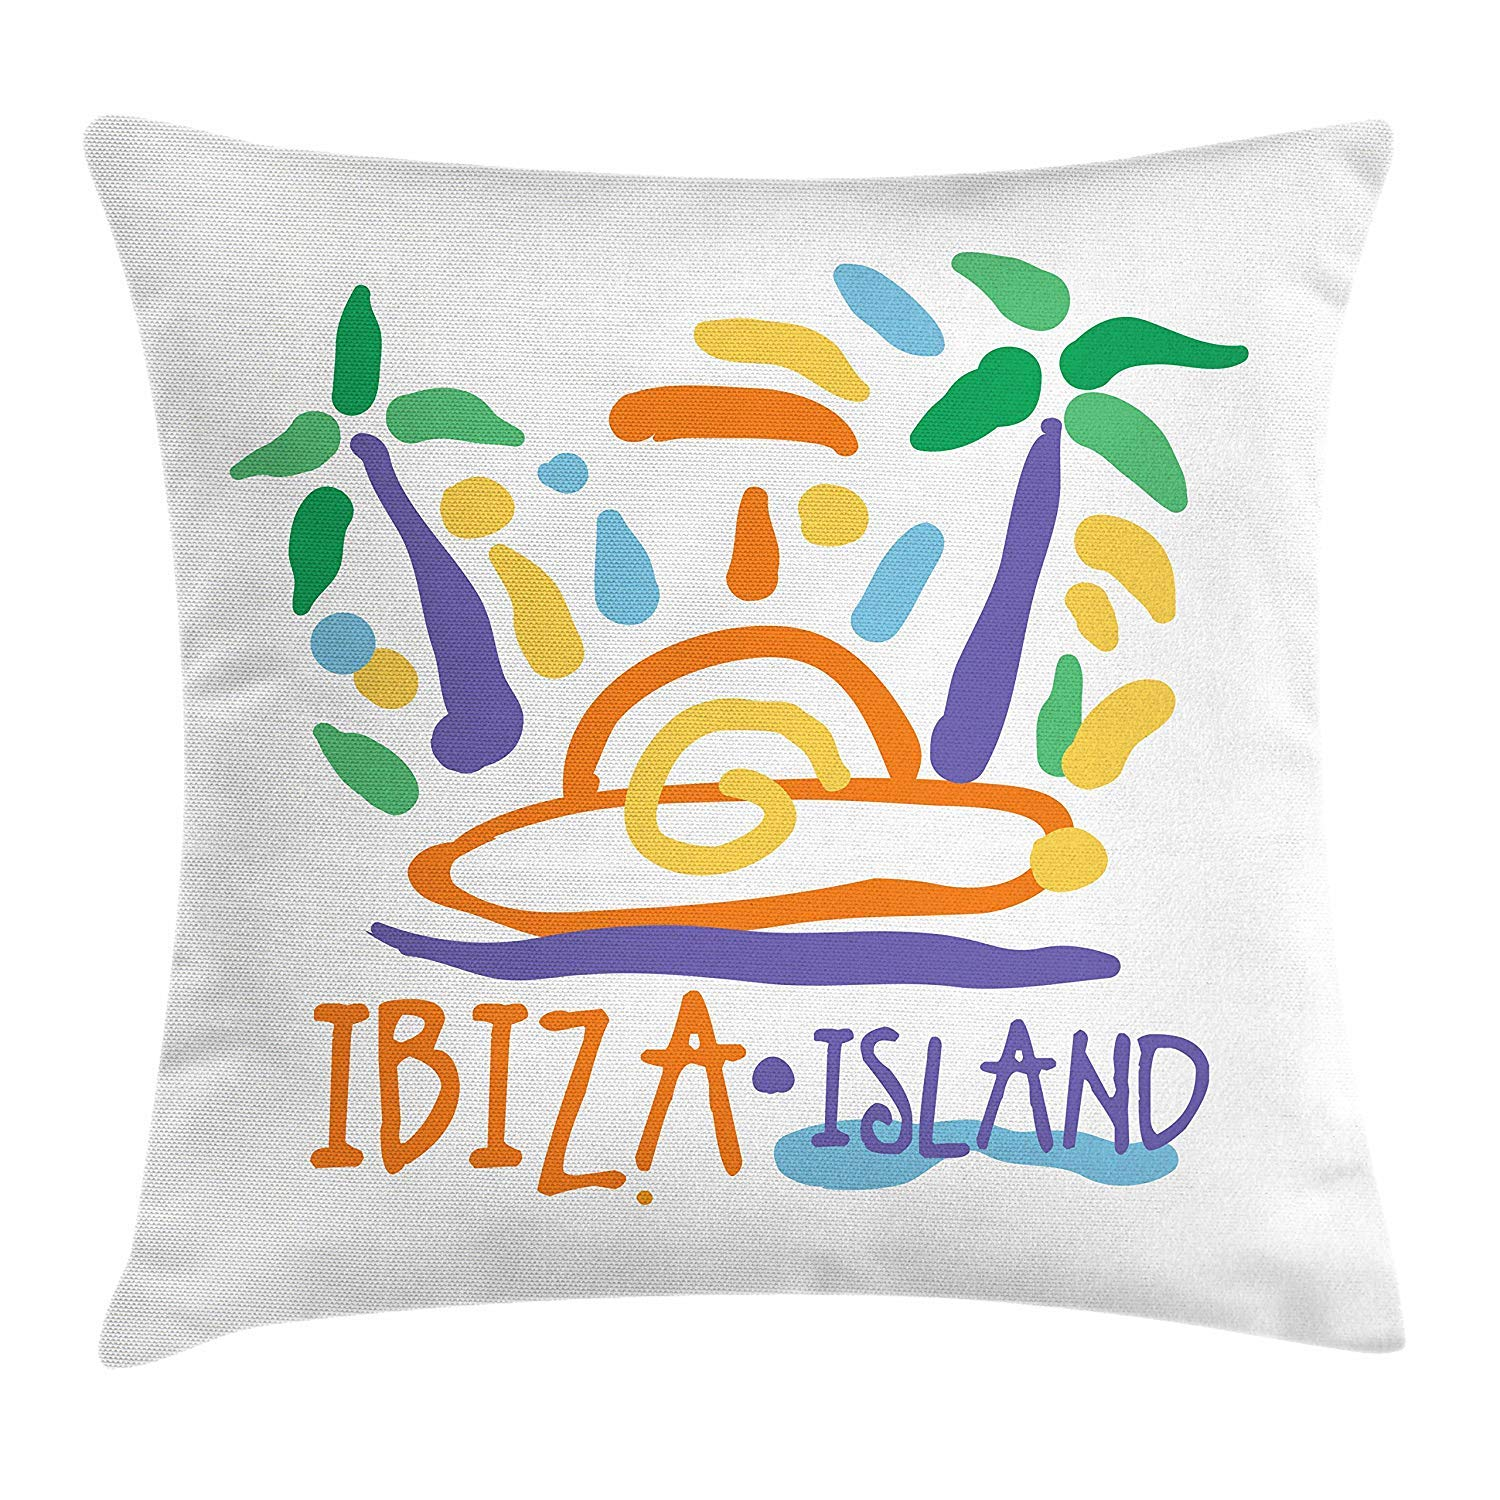 Decorativepillows Case Throw Pillows Covers For Couch/Bed 18 ...